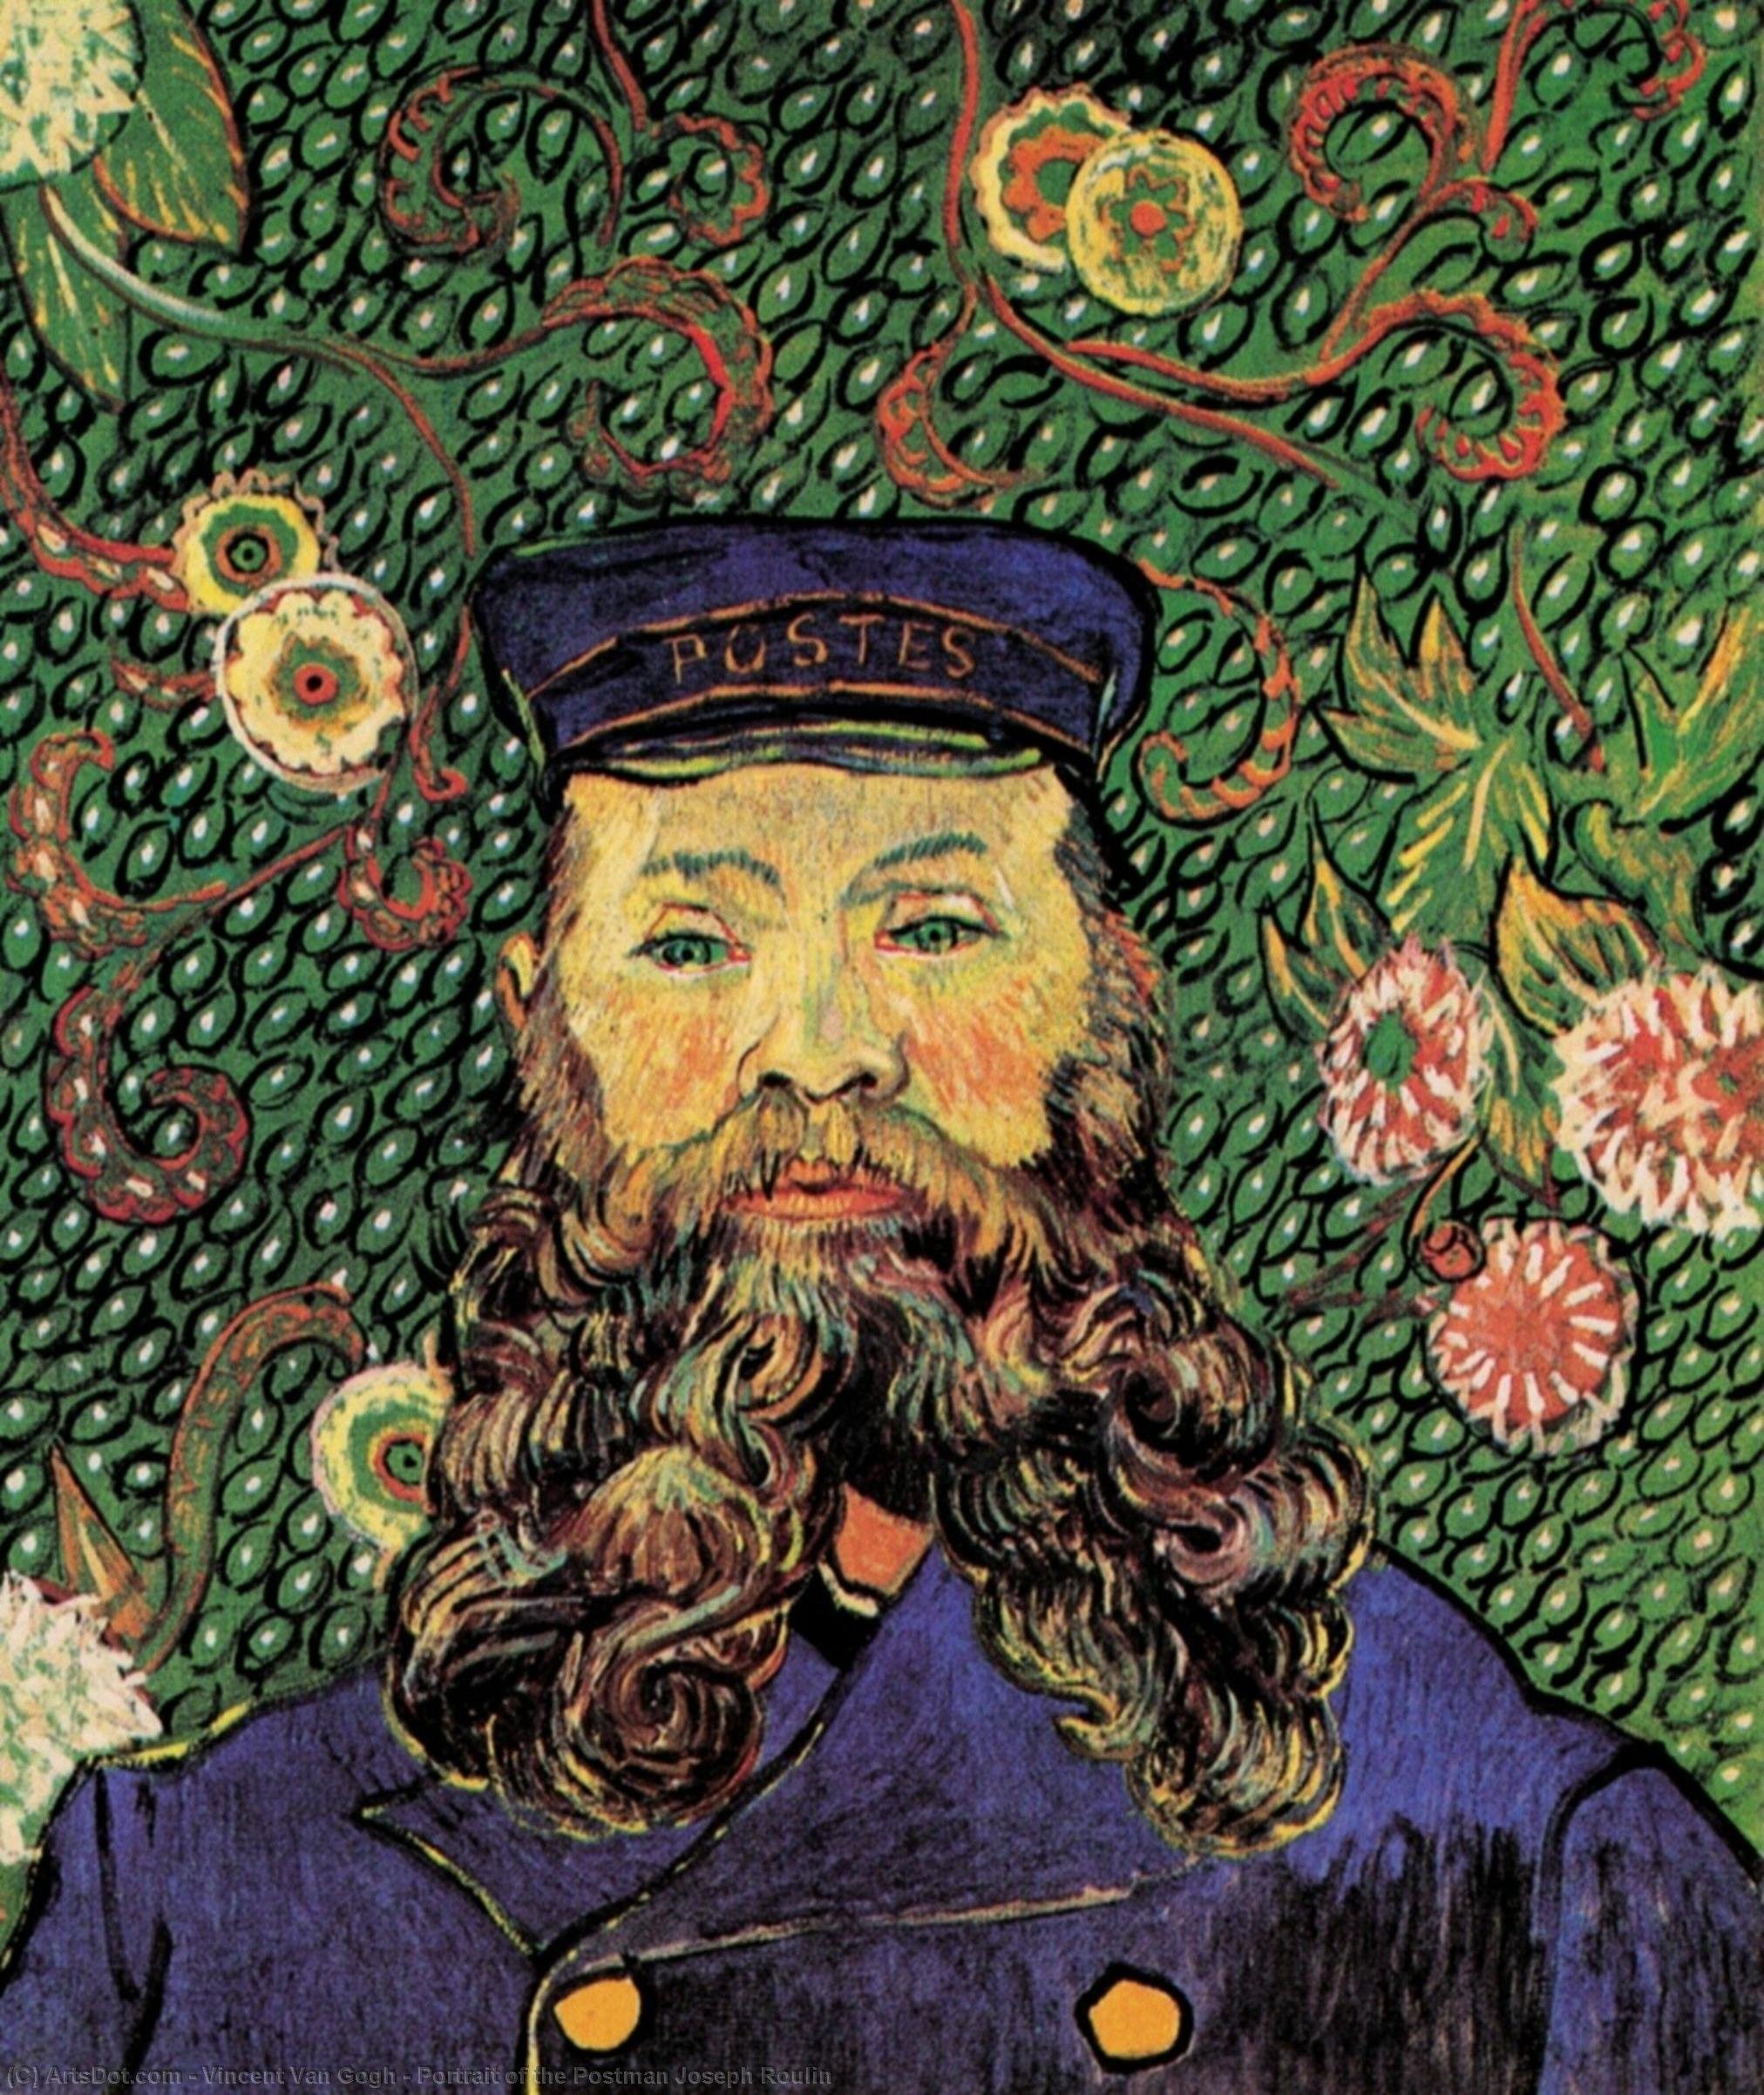 Wikioo.org - The Encyclopedia of Fine Arts - Painting, Artwork by Vincent Van Gogh - Portrait of the Postman Joseph Roulin